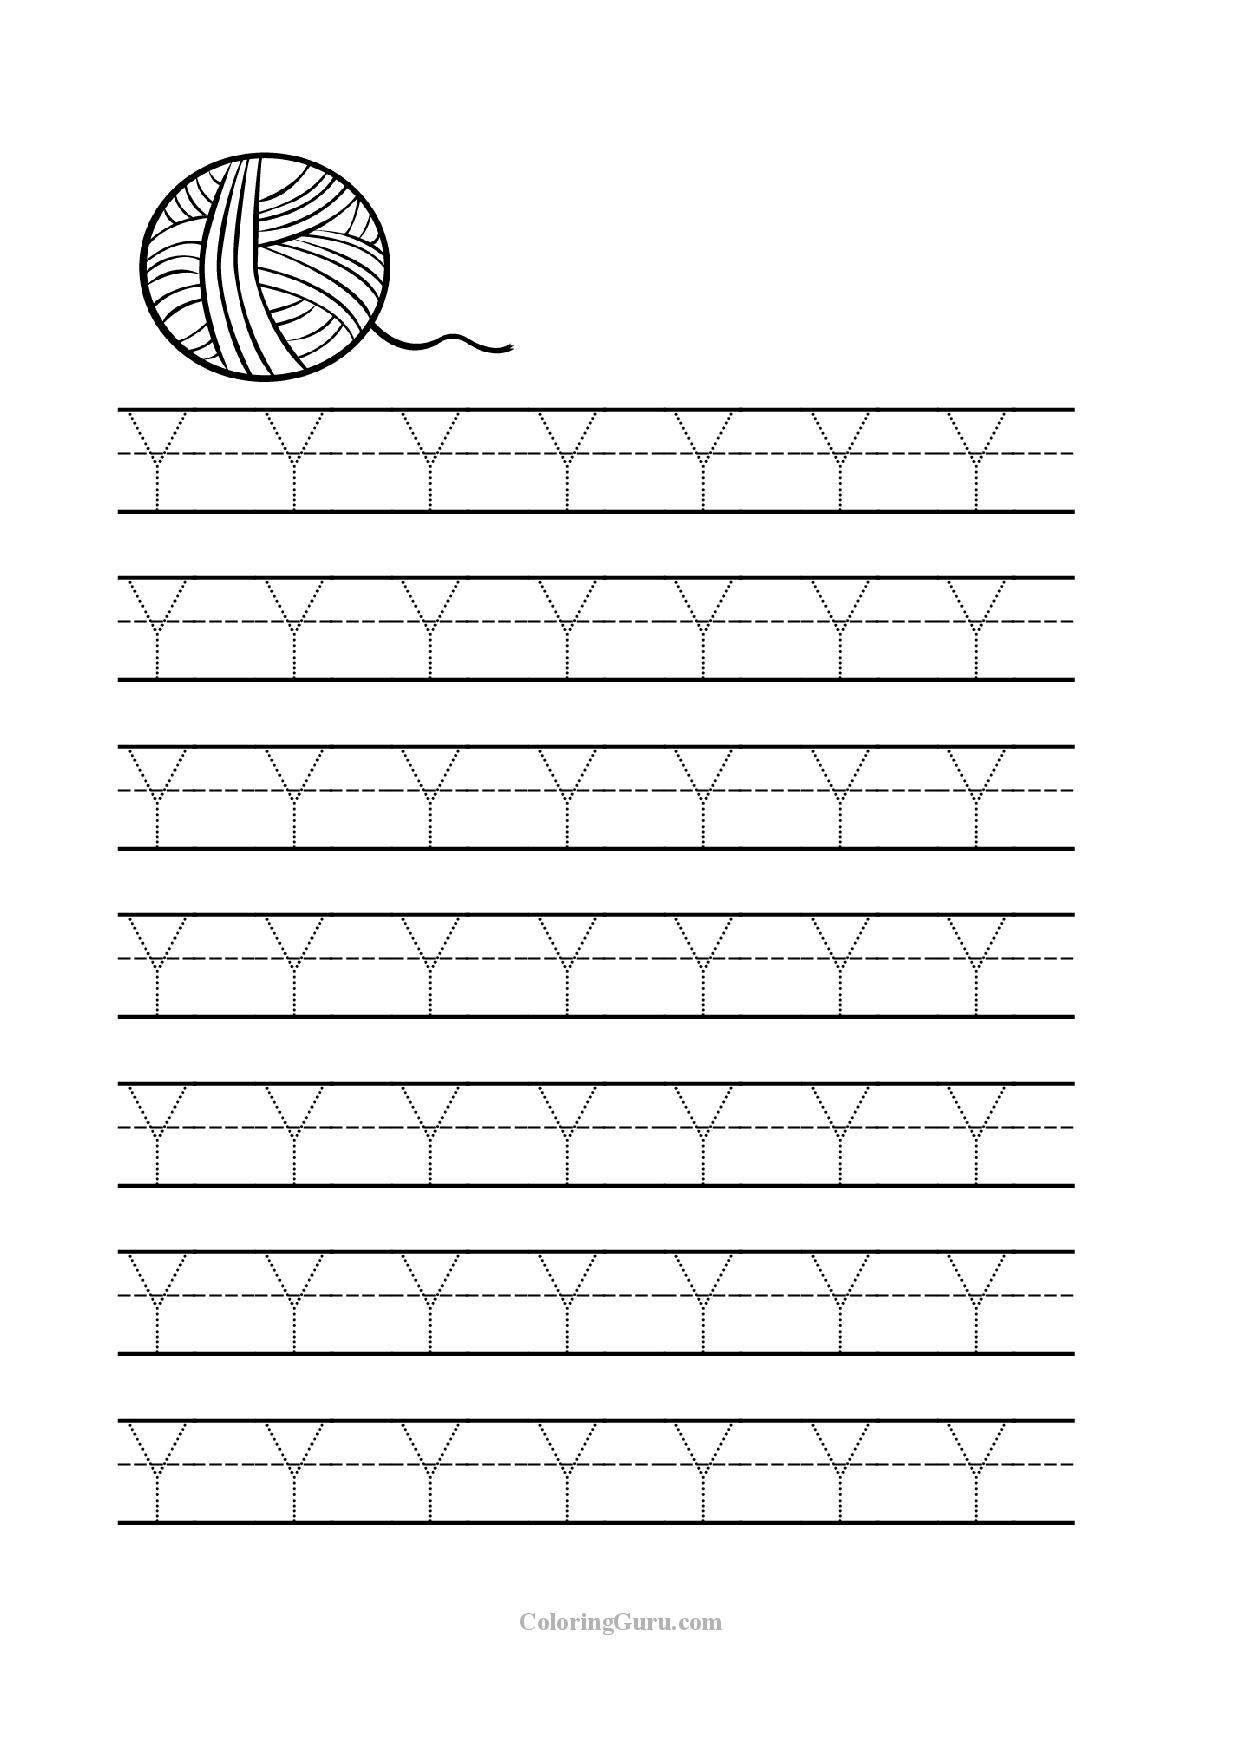 2 Worksheets Writing Lowercase U And Y In With